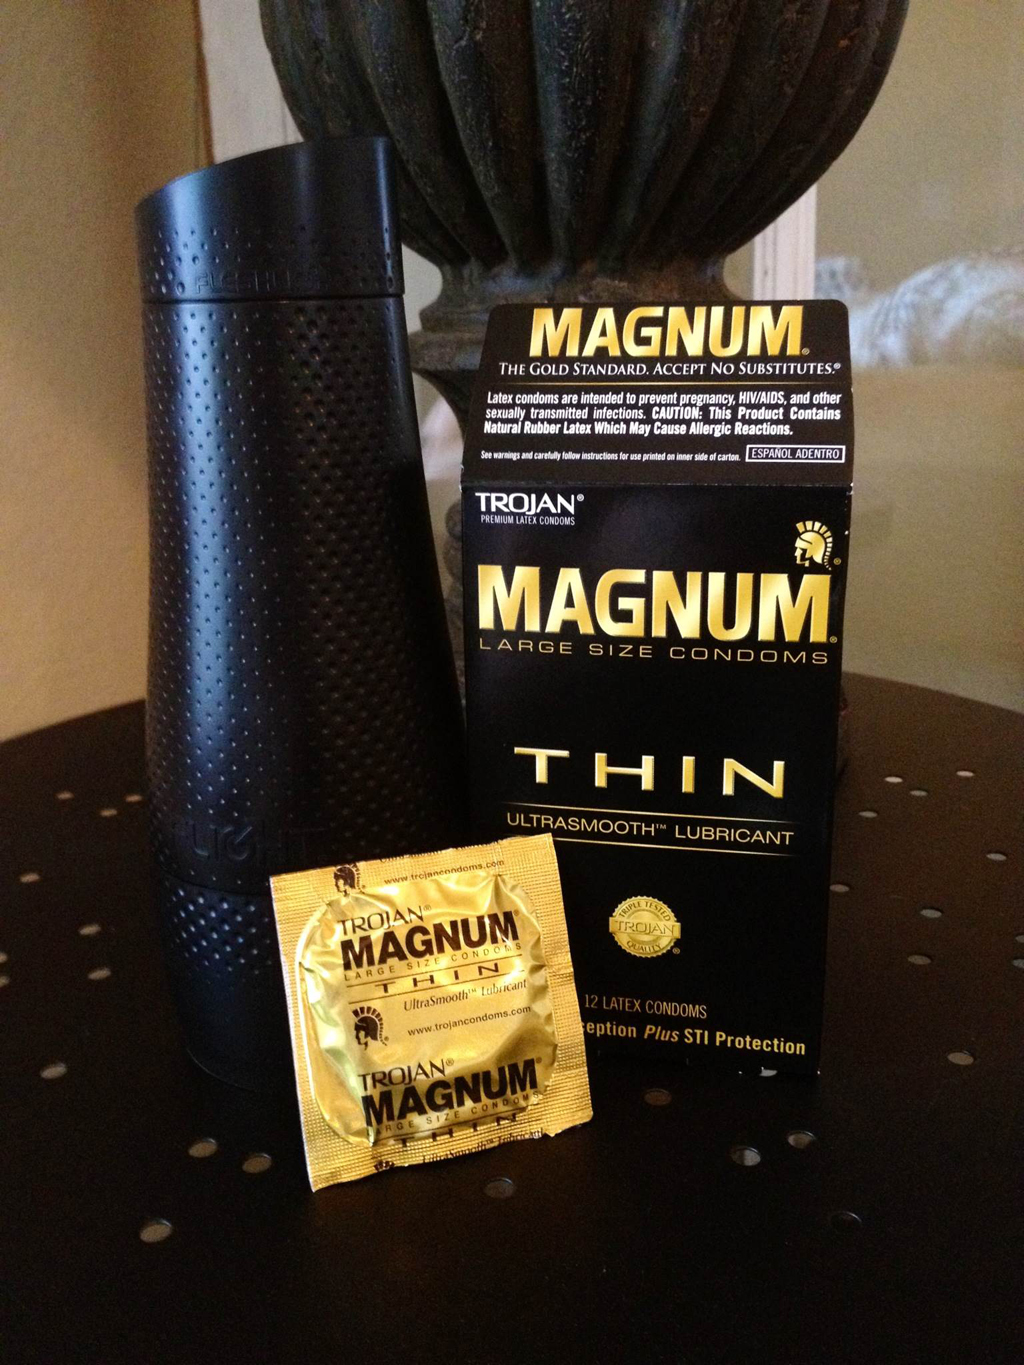 Difference between regular and magnum condoms